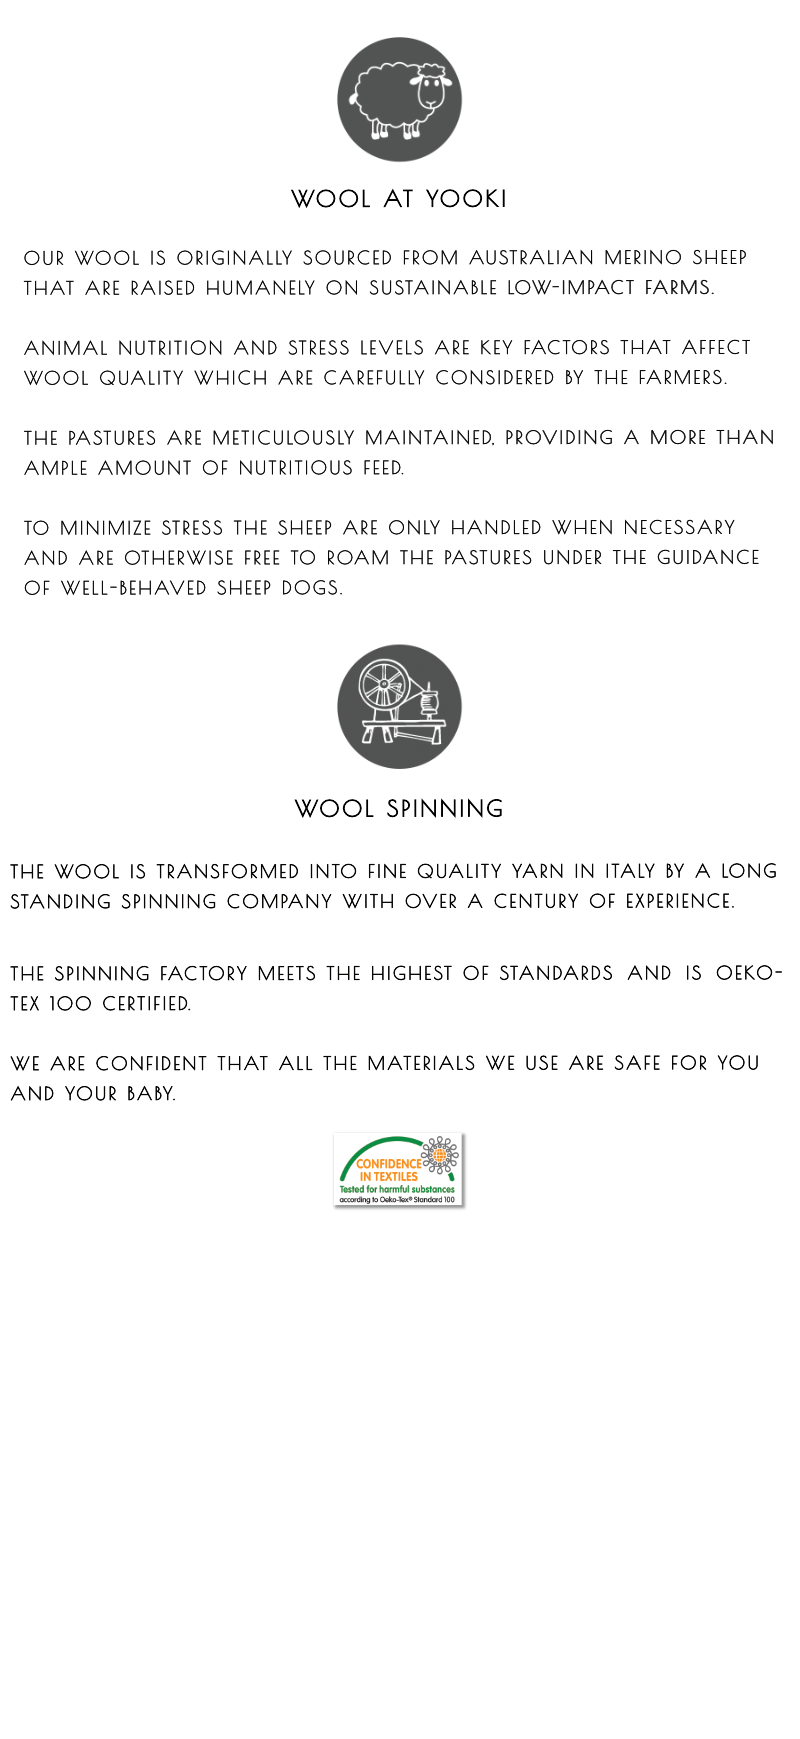 ABOUT YOOKI WOOL'S WOOL SOURCE